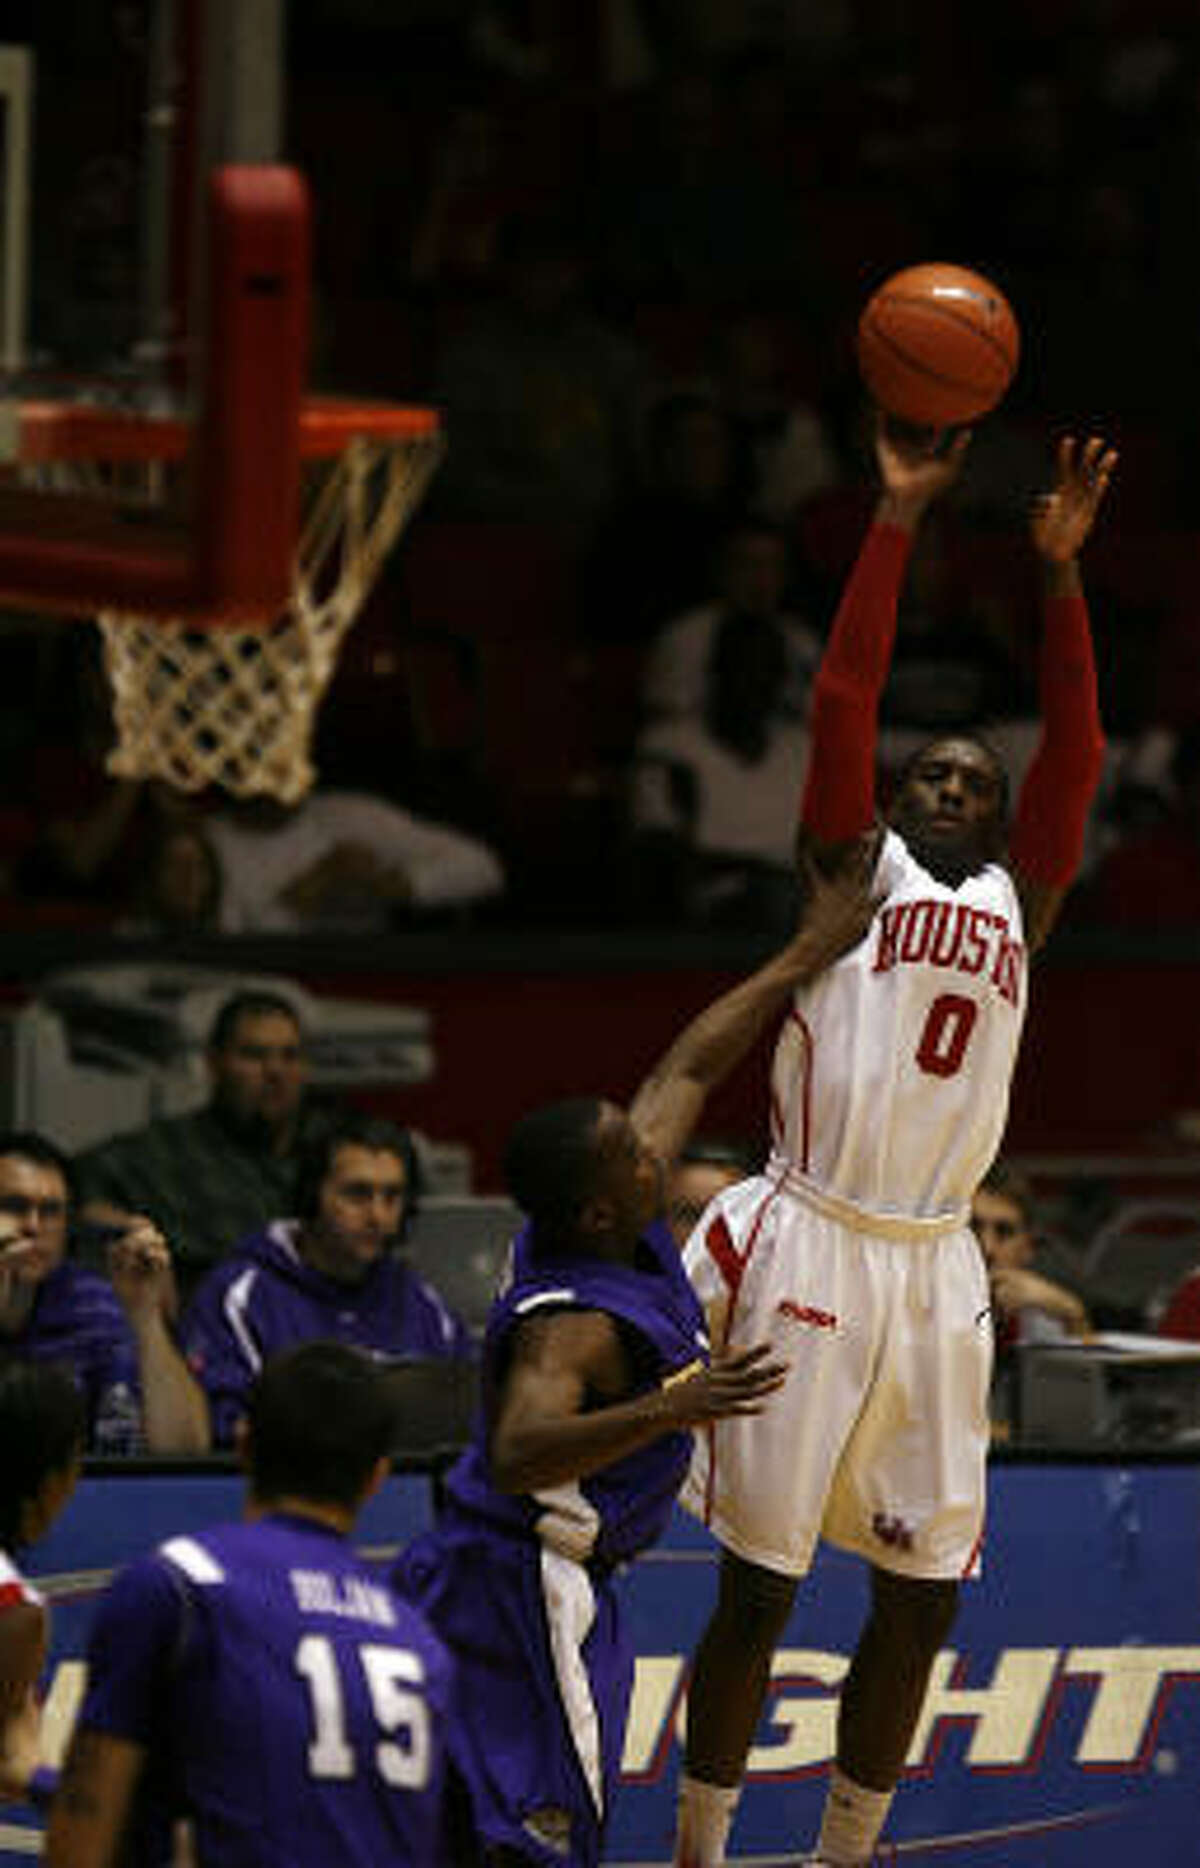 UH guard Kelvin Lewis had 25 points in the Cougars' win over TCU.